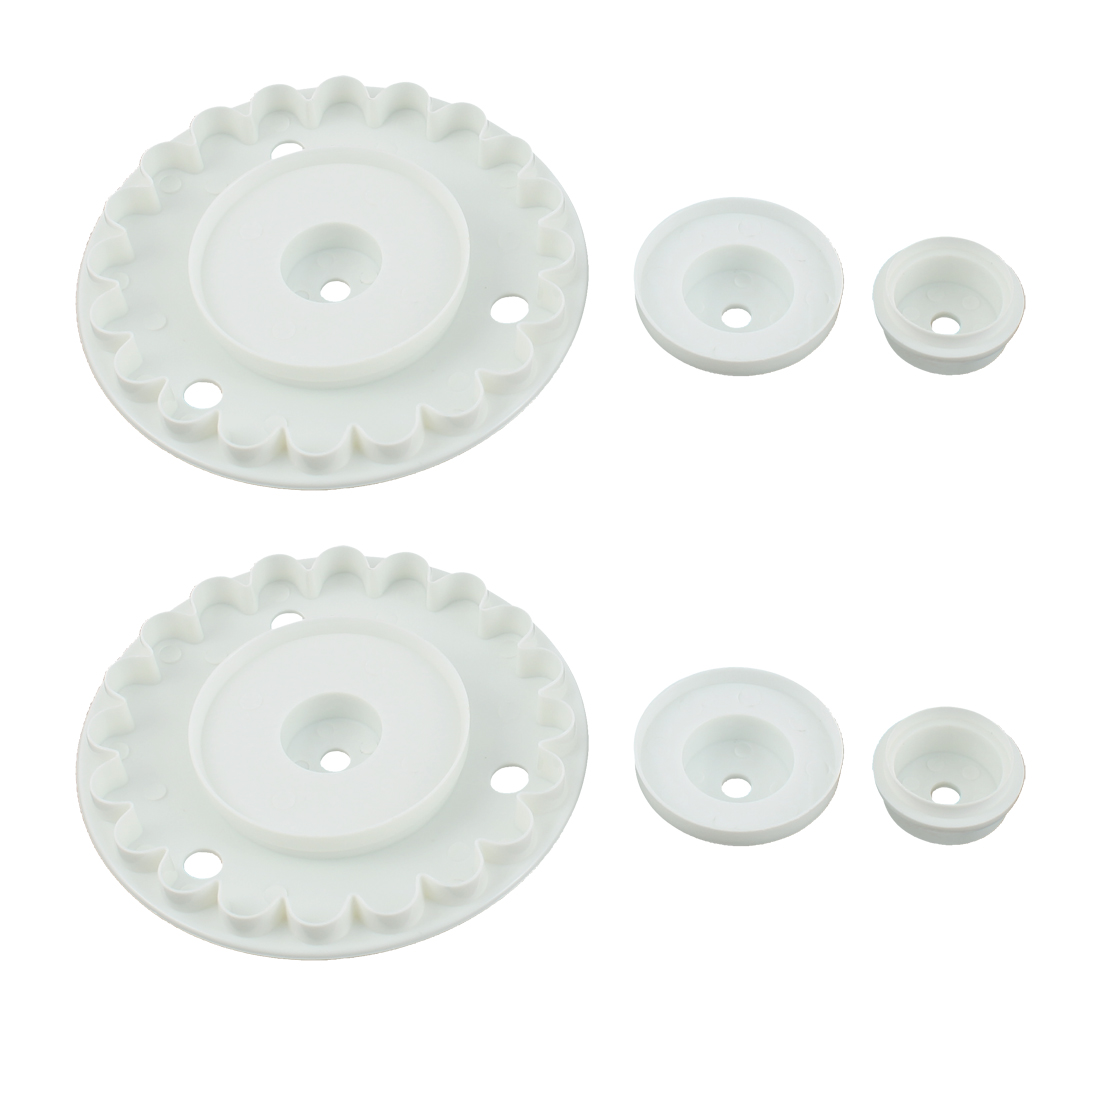 Fondant Cake Sugarcraft Decorating Garrett Frill Cutter Set 8 in 1